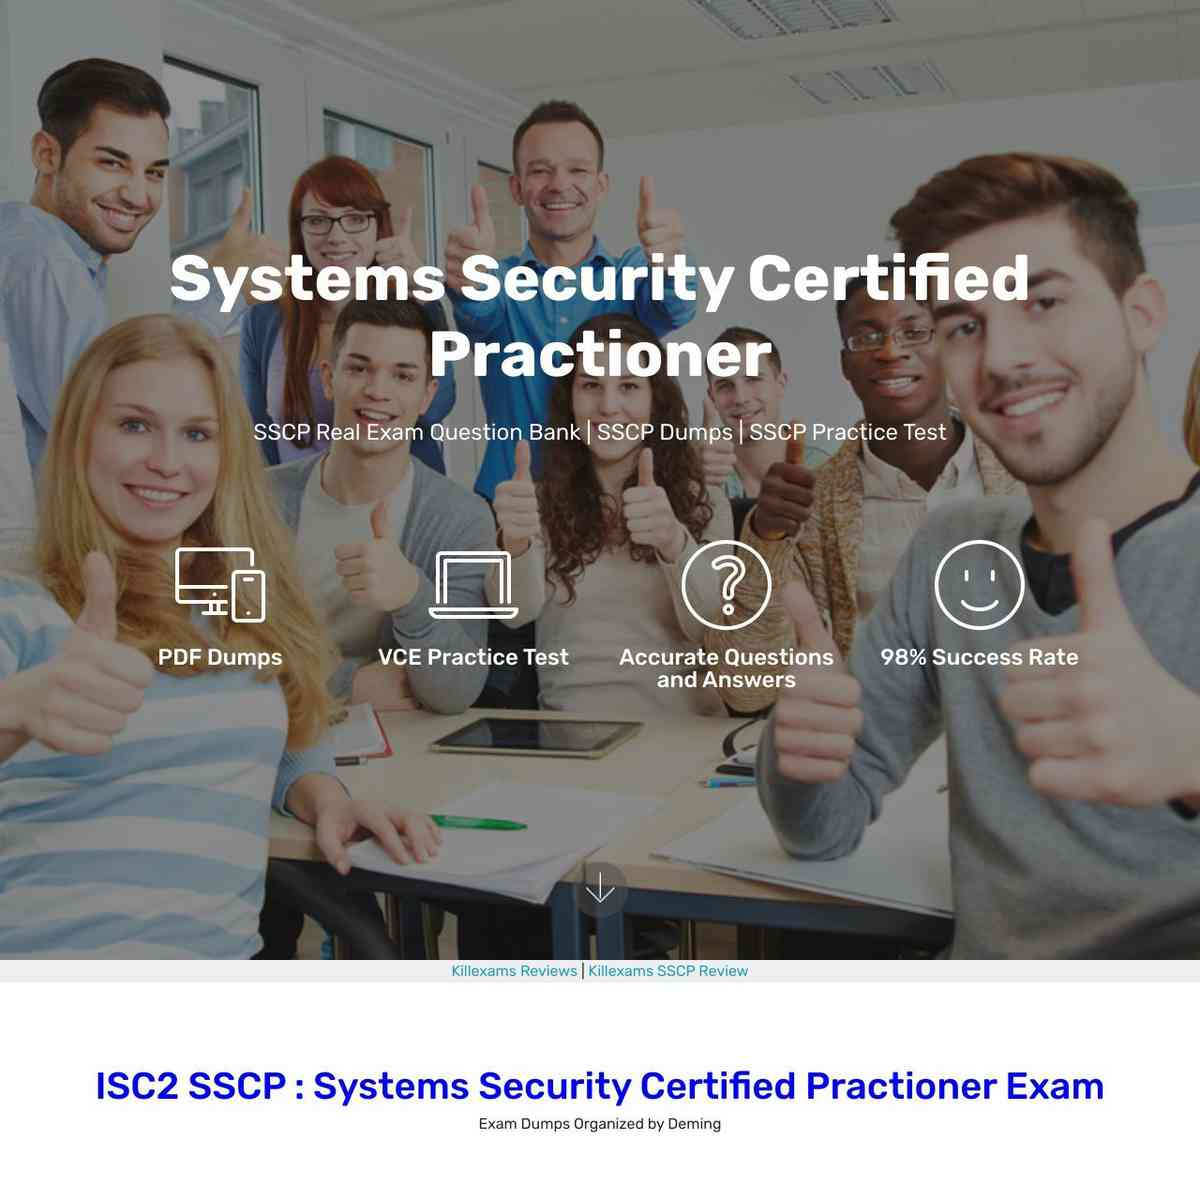 SSCP boot camp are ultimately necessary for real exam